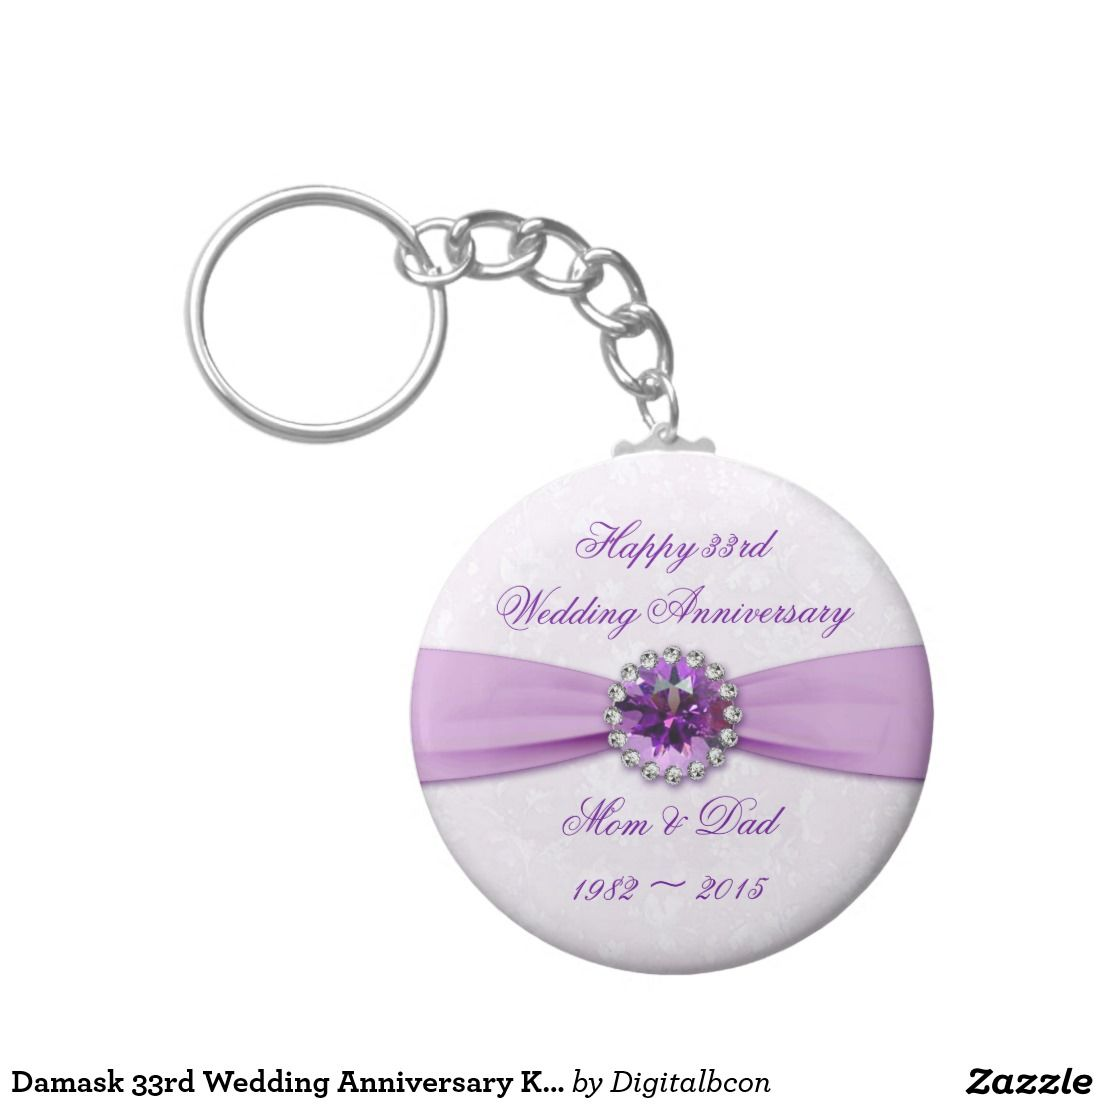 Damask 33rd Wedding Anniversary Key Chain 33rd Wedding Anniversary